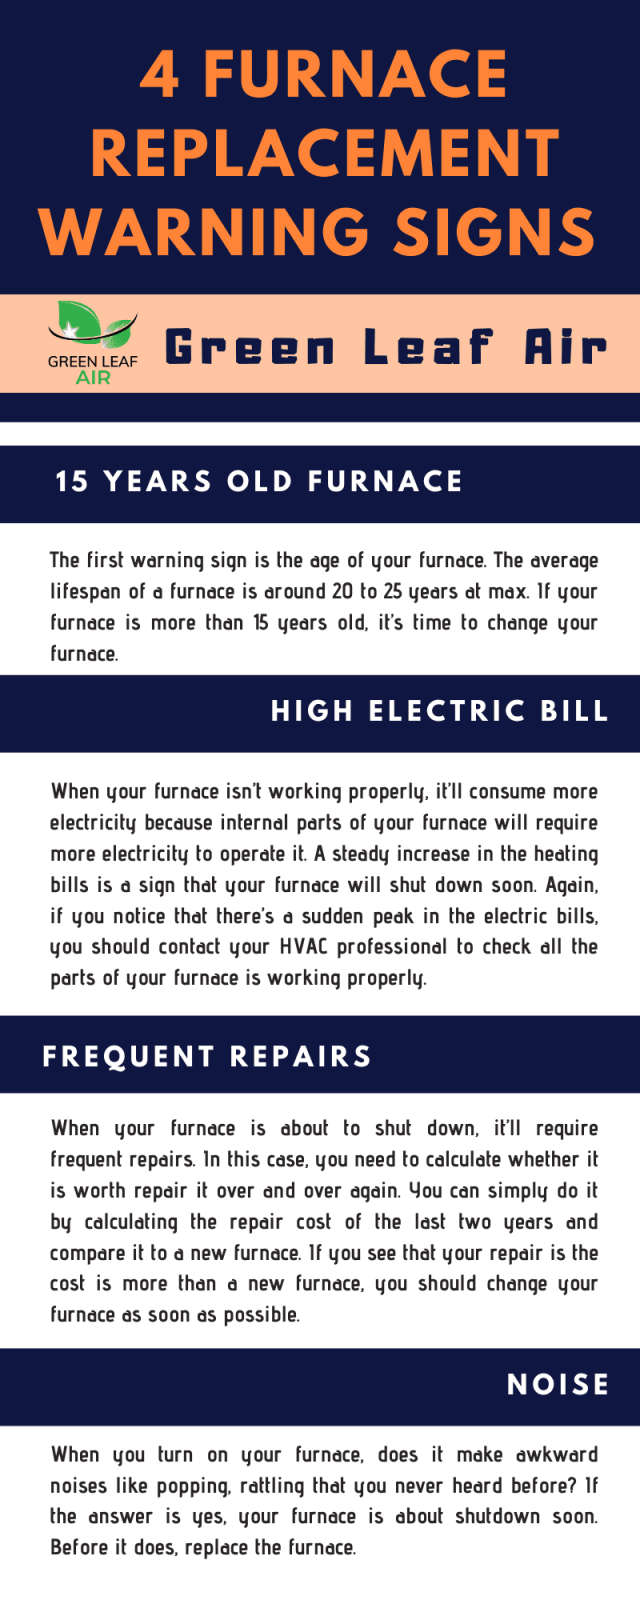 4 Furnace Replacement Warning Signs